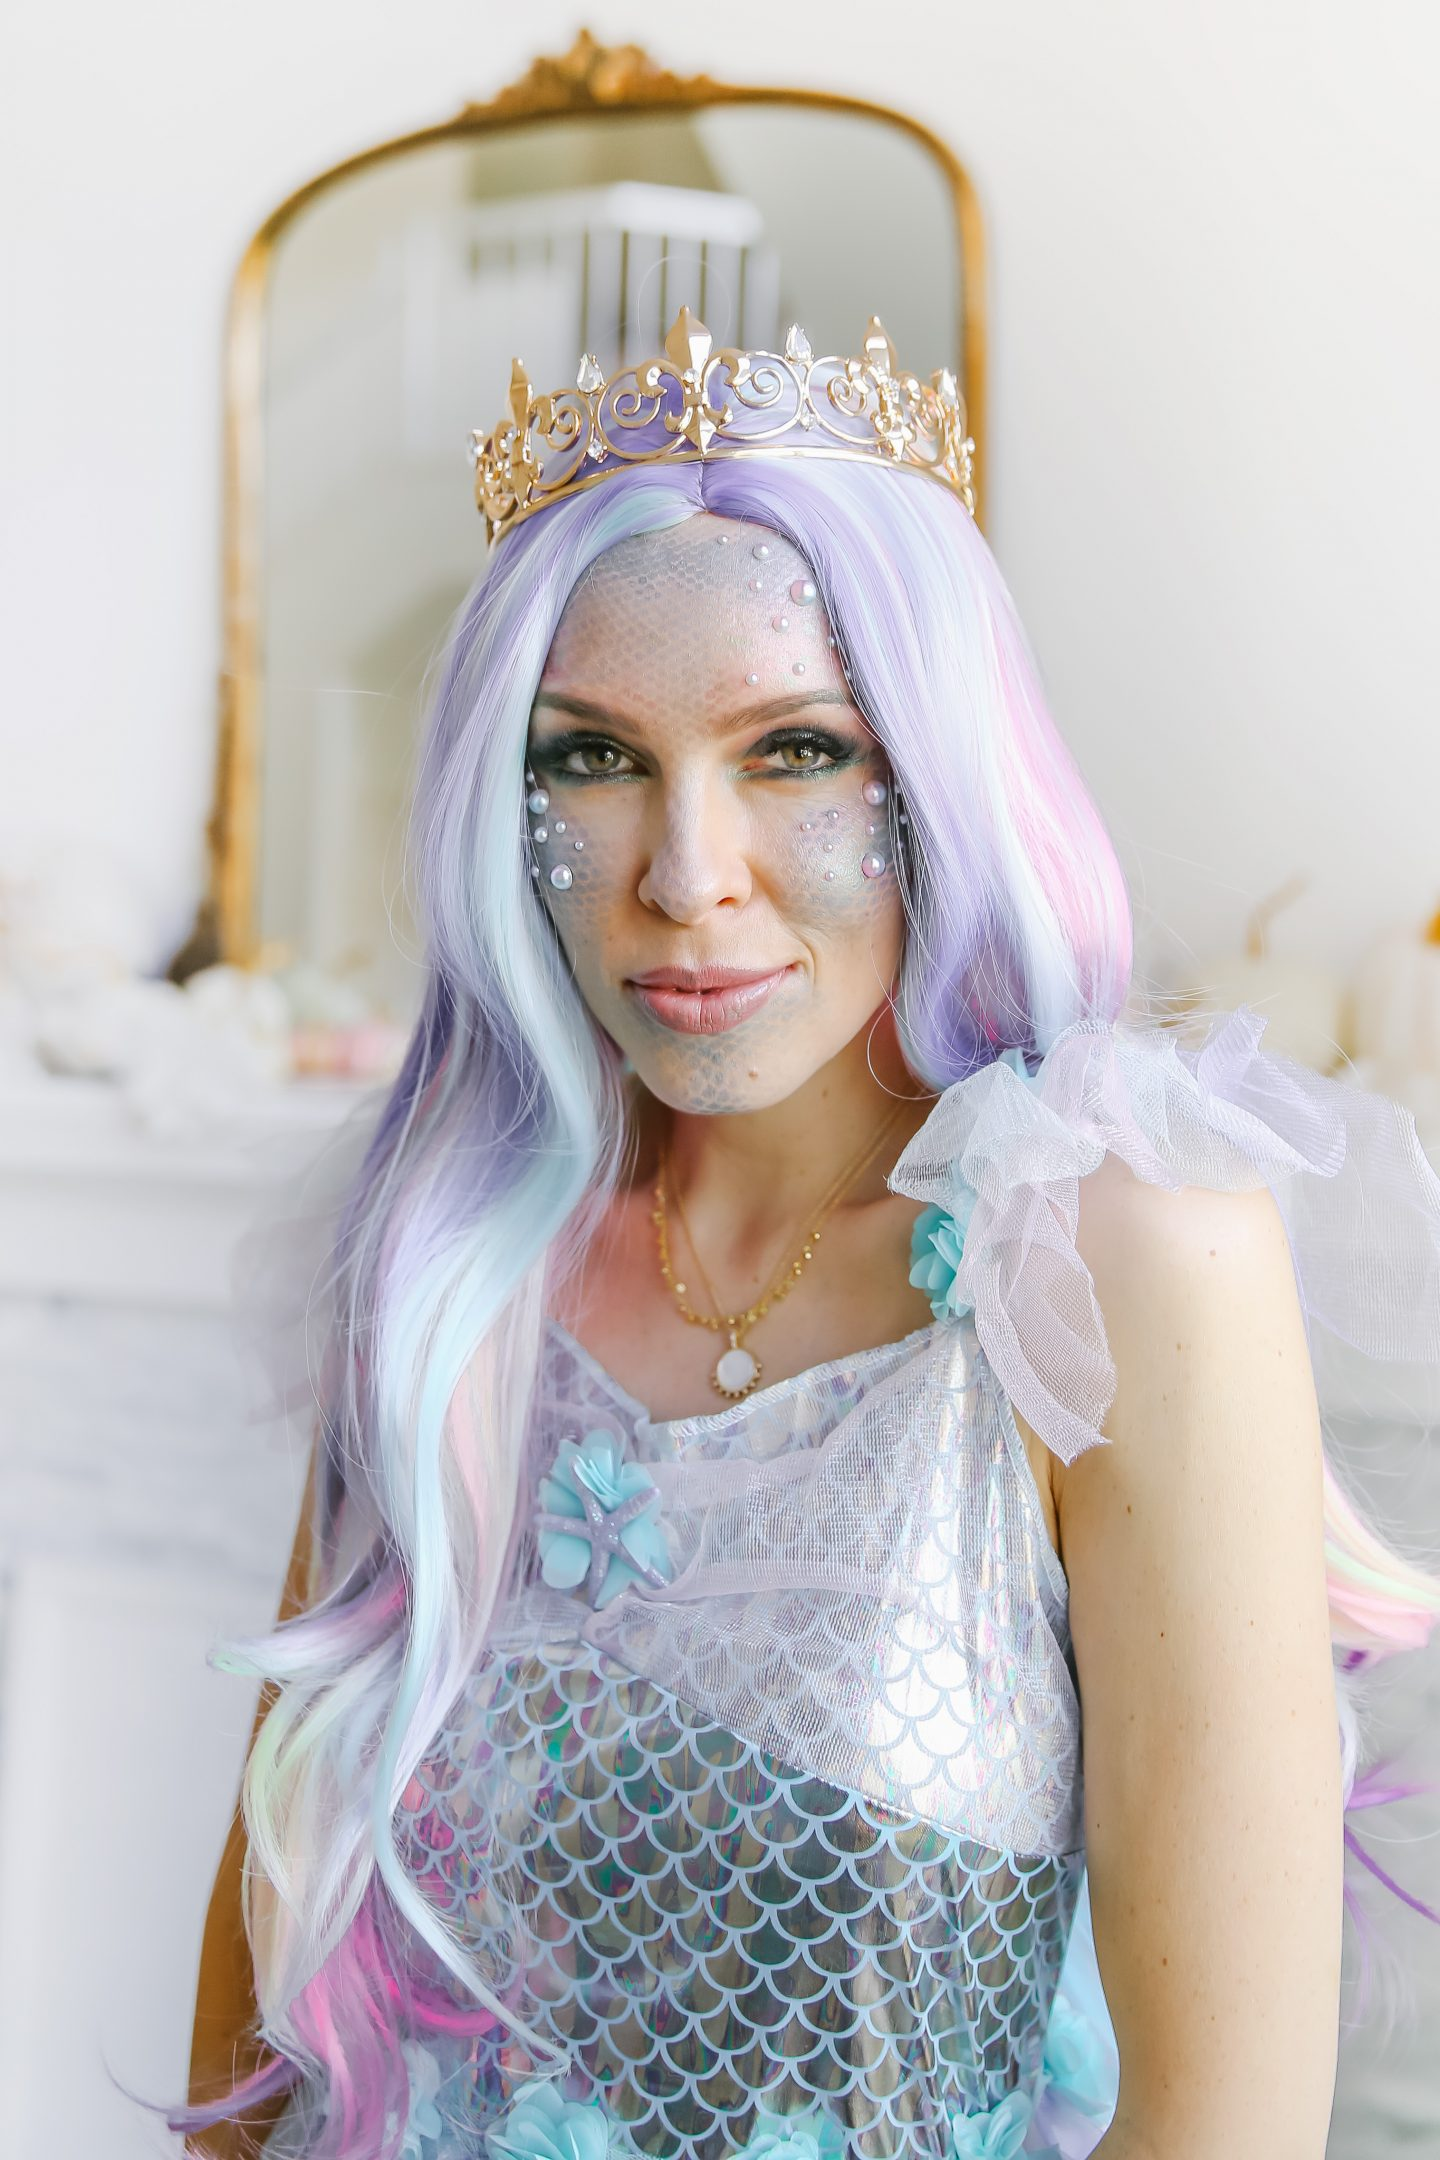 Mermaid family Halloween make-up and costumes ideas styled by top San Francisco fashion blogger Lombard and Fifth.